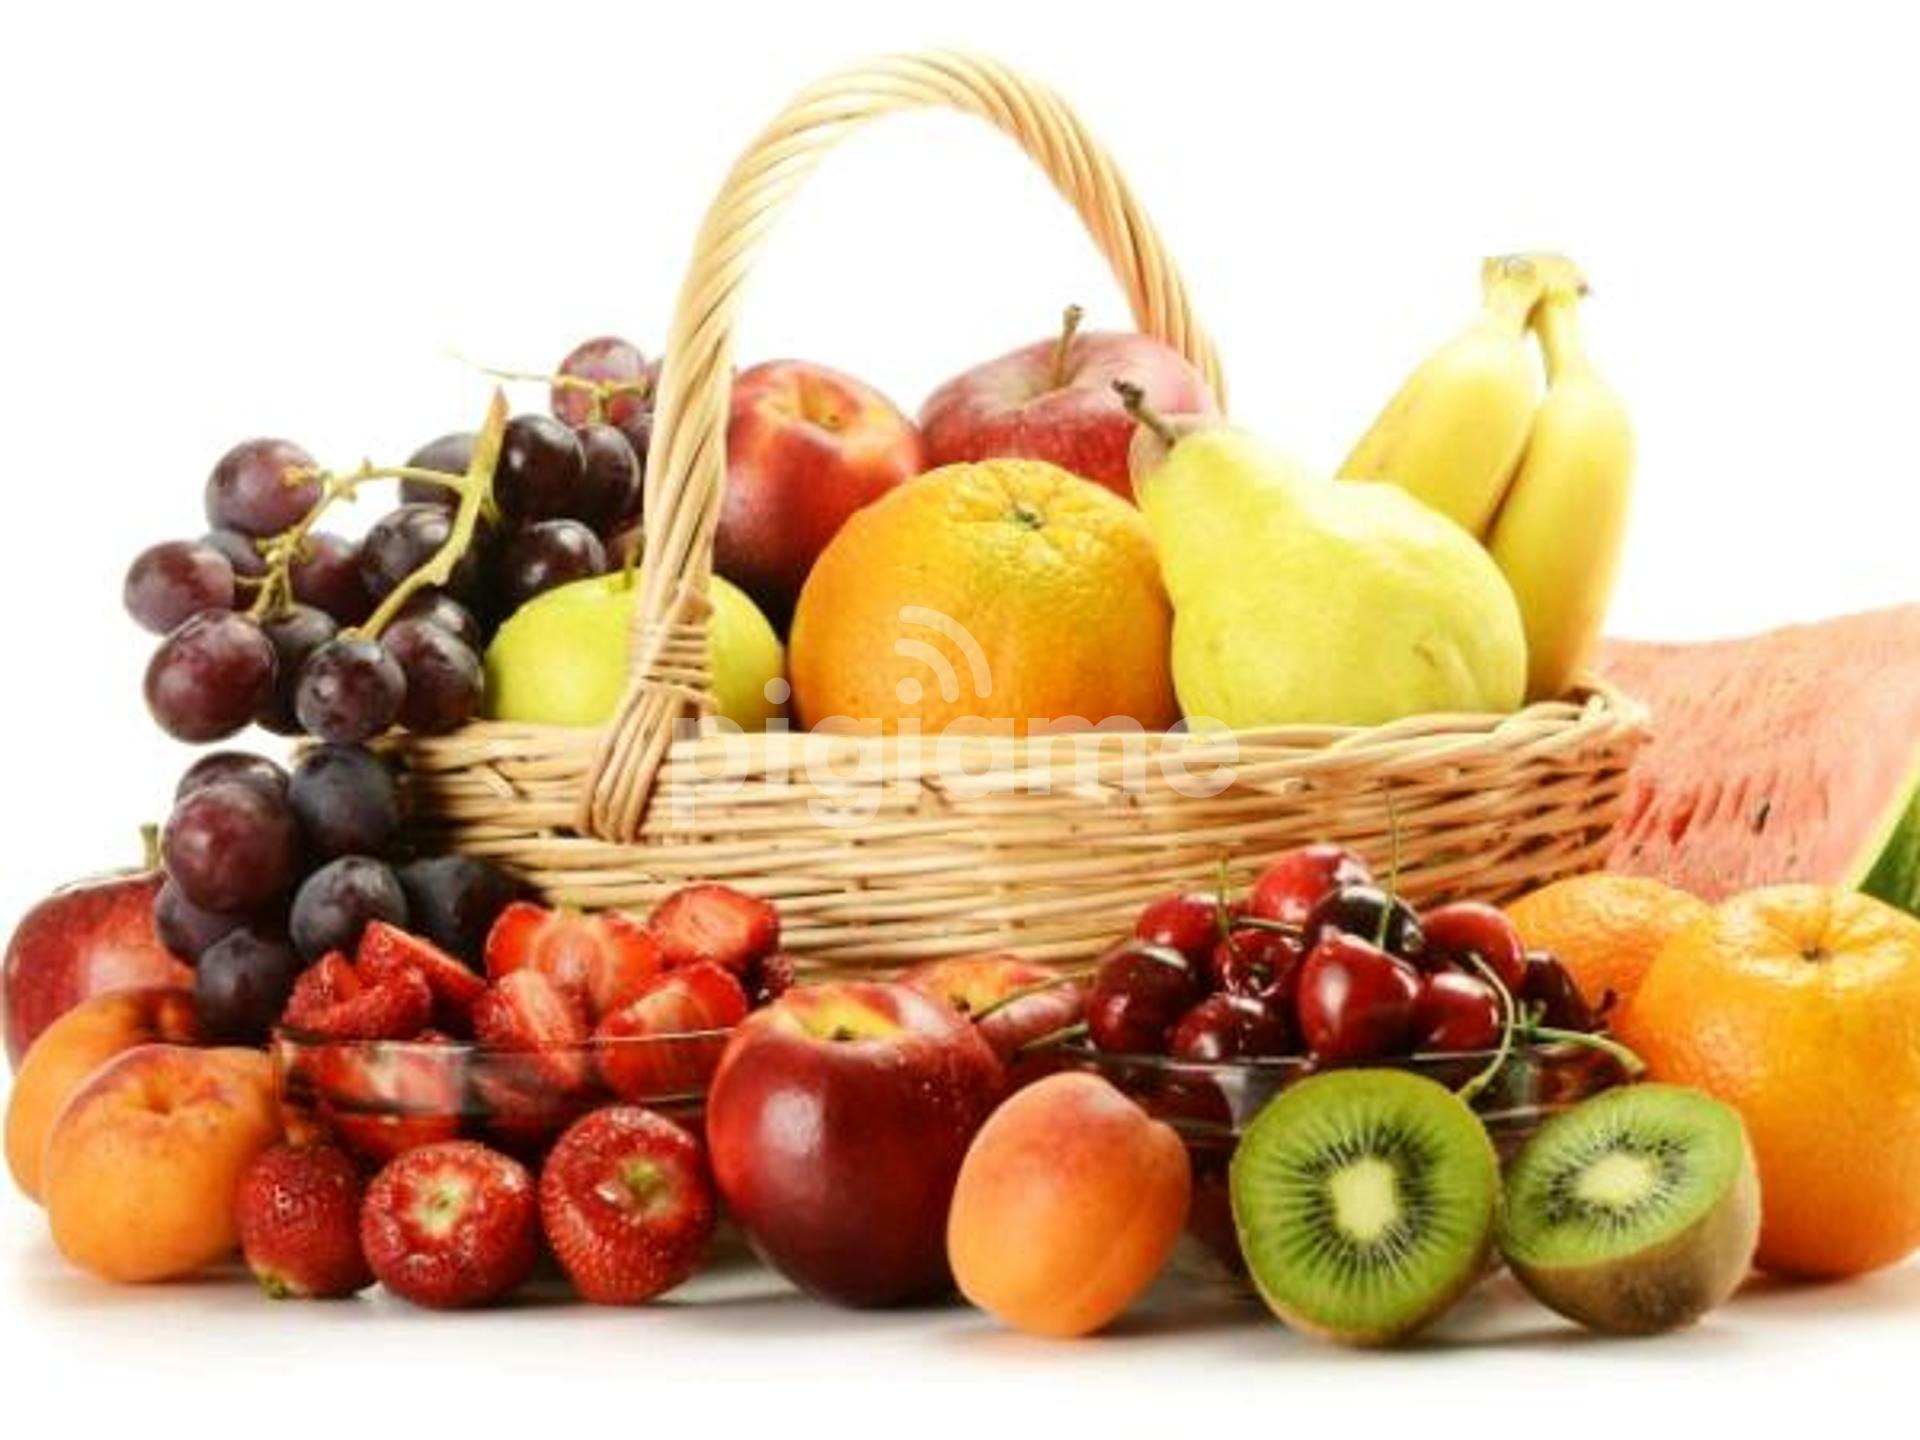 Fruits and Vegetables Supply